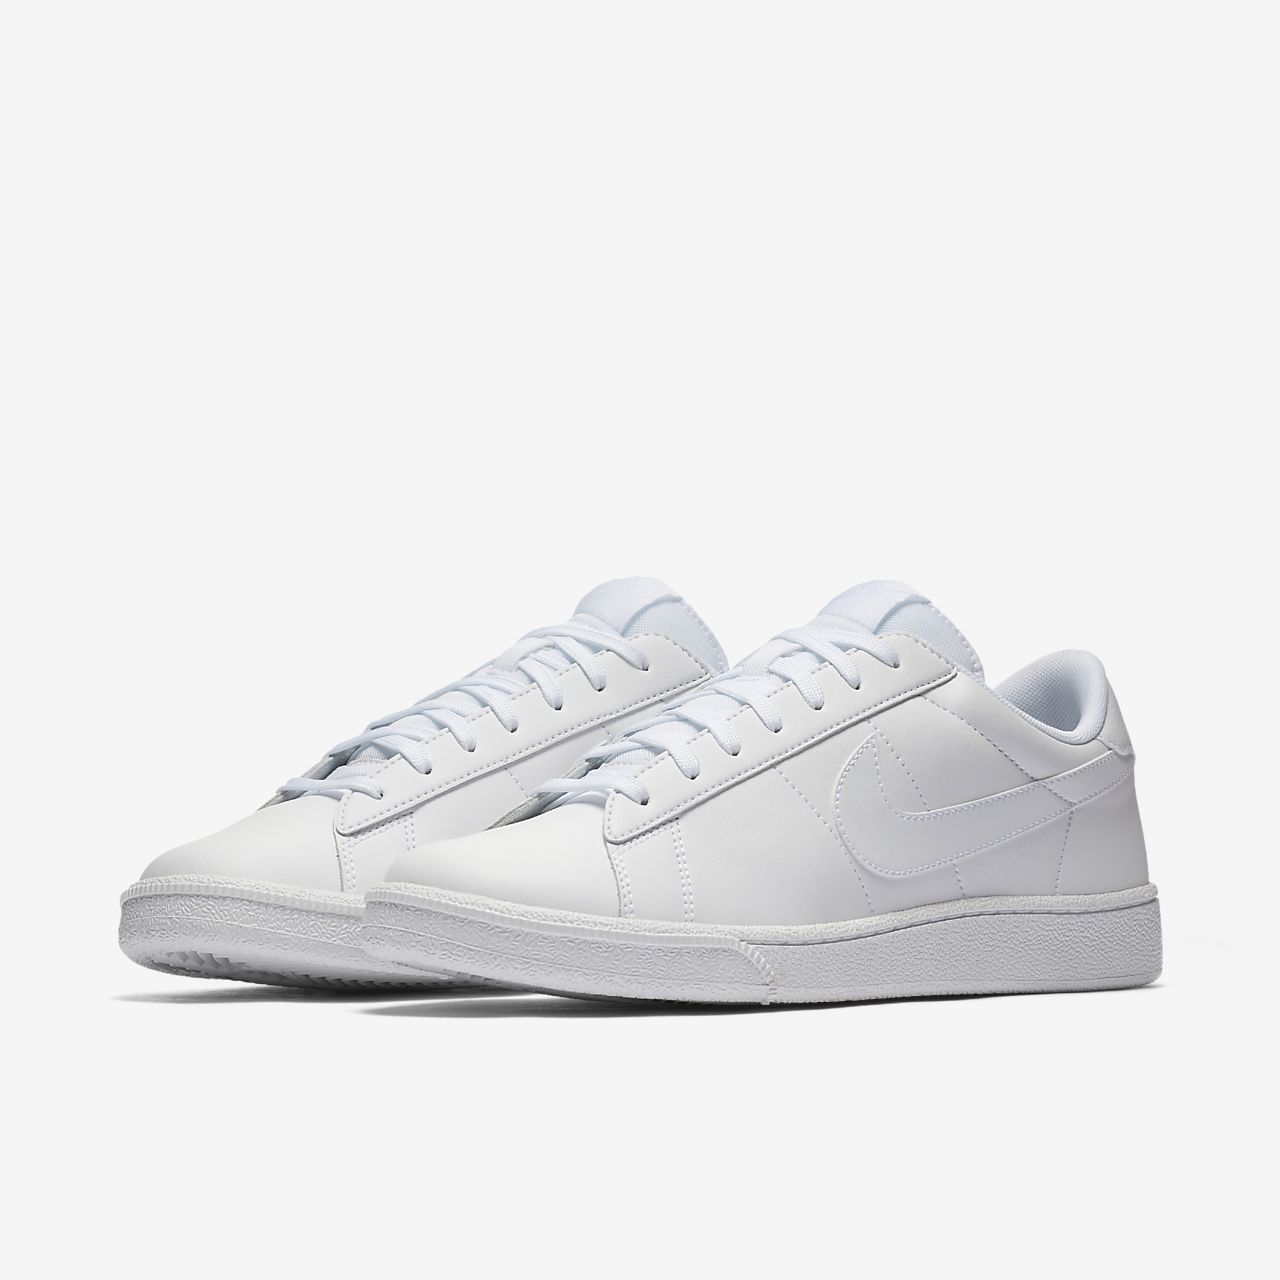 ... Nike Flyleather Tennis Classic with at least 50% leather fiber Unisex  Shoe